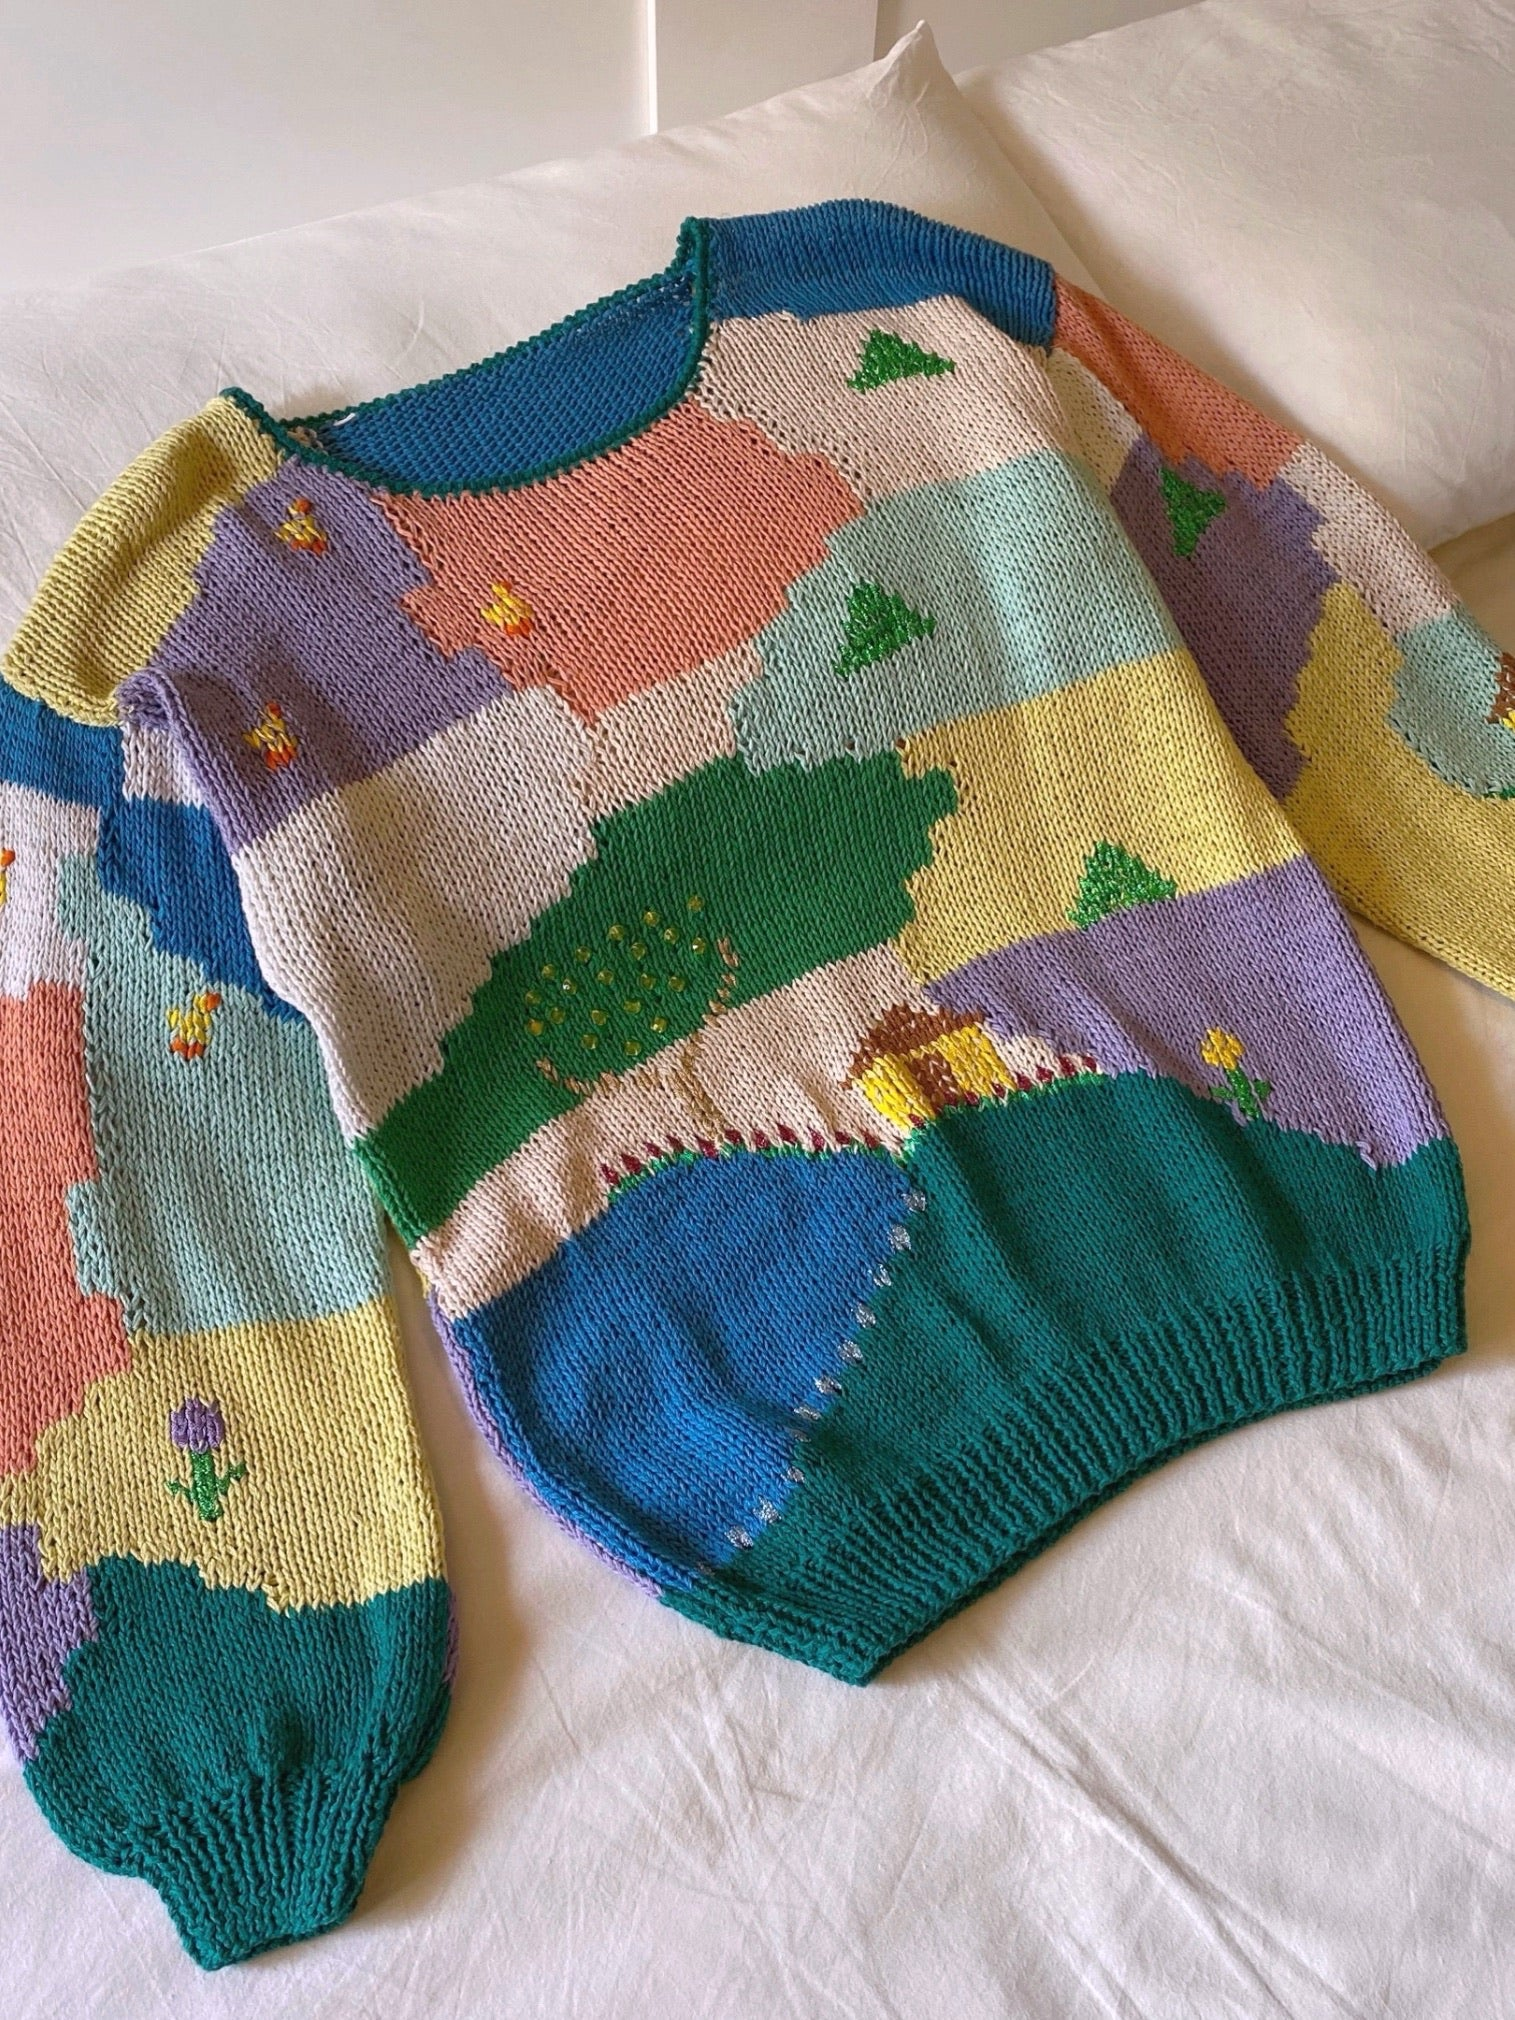 Vintage Italian hand knitted pure cotton landscape pull